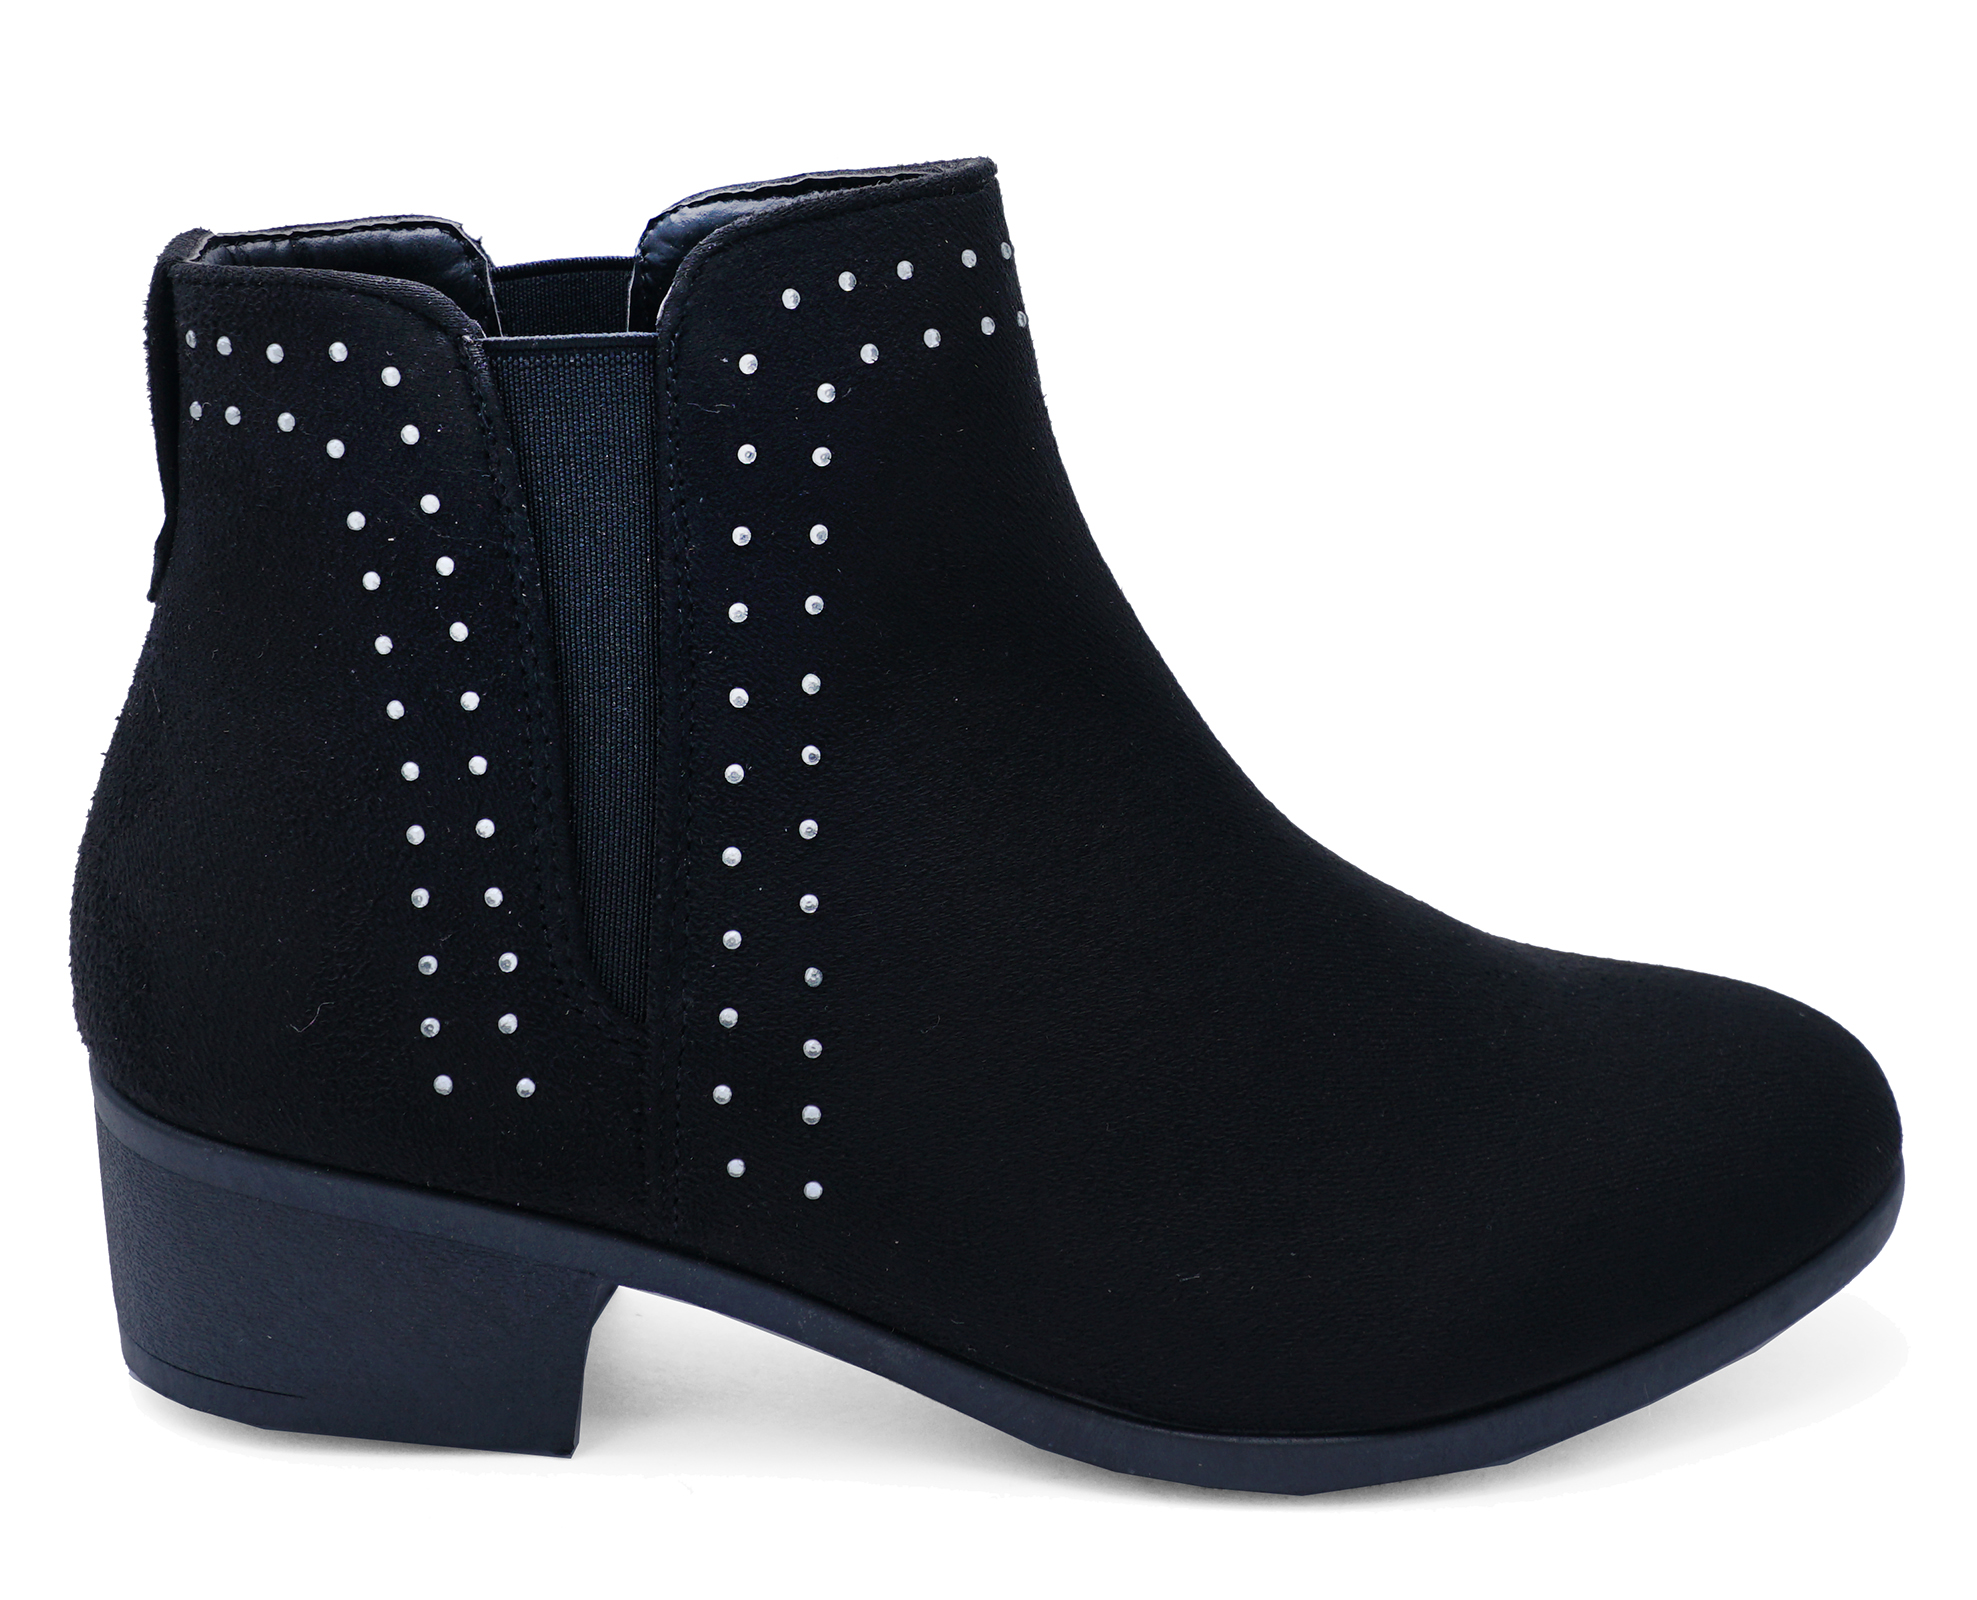 LADIES-WOMENS-LOW-BLOCK-HEEL-ANKLE-STUDDED-DIAMANTE-CHELSEA-BOOTS-SHOES-SIZE-3-8 thumbnail 5